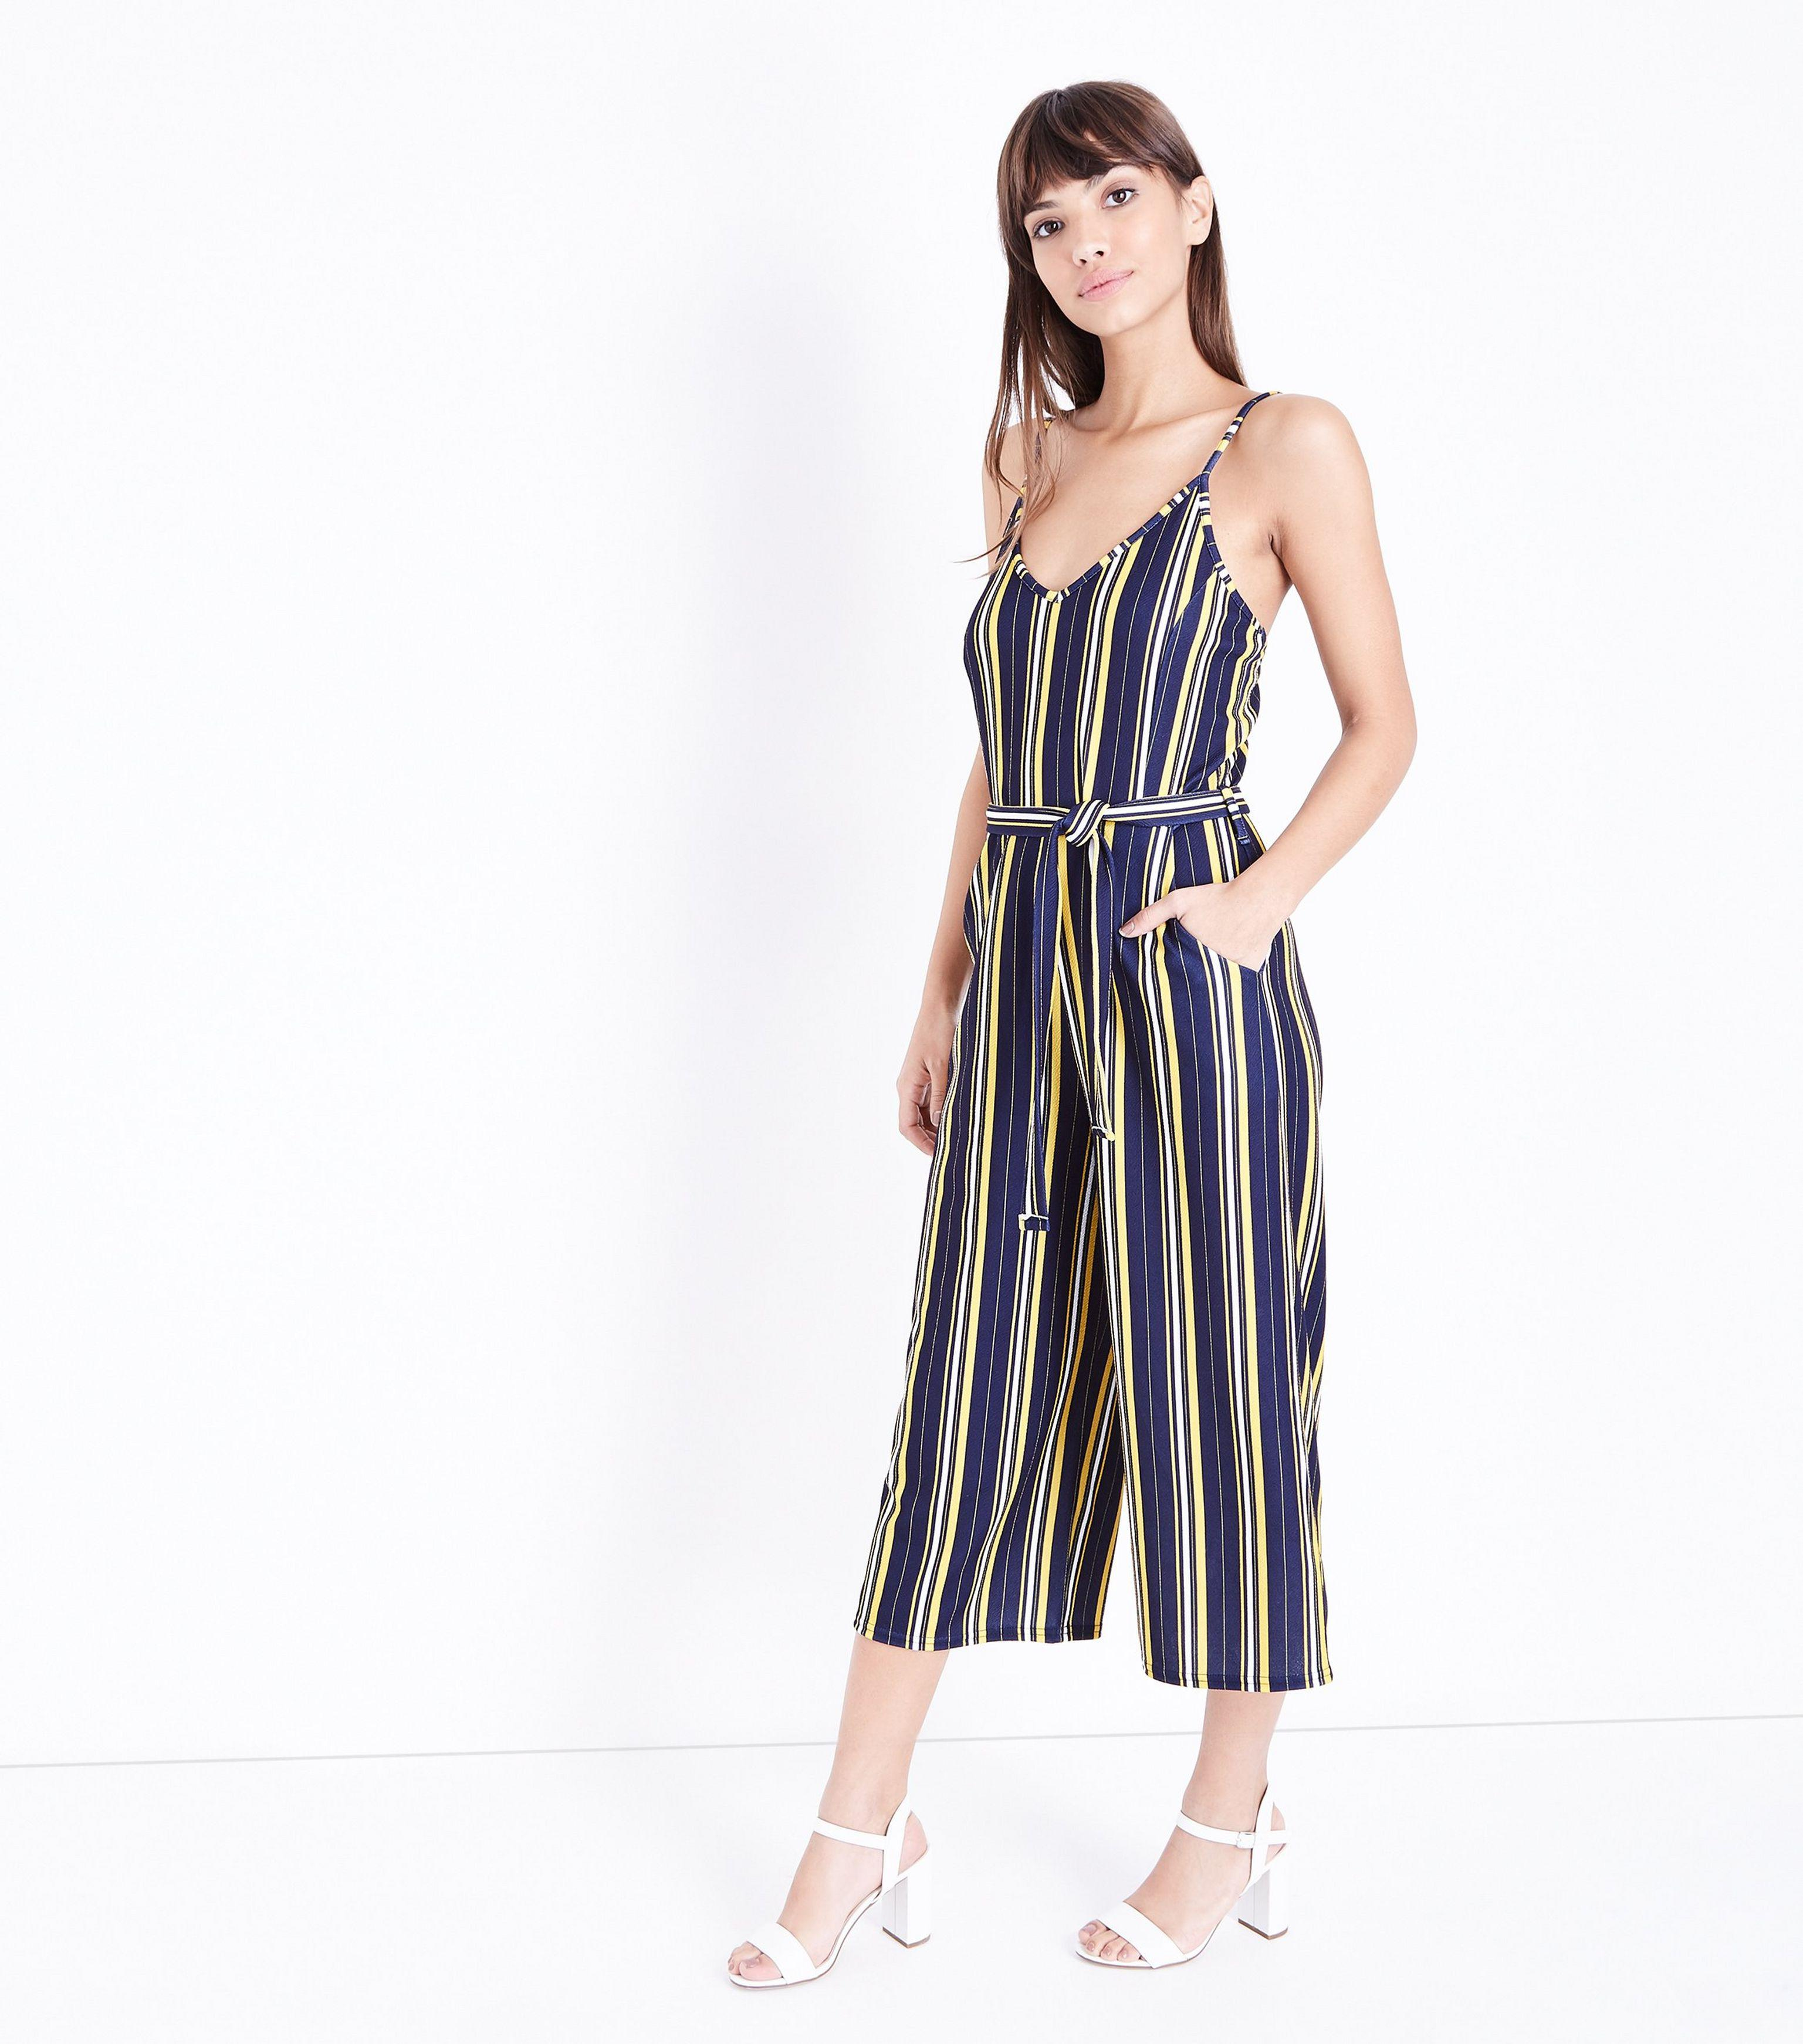 bada61d2fc1c New Look Navy Stripe V Neck Culotte Jumpsuit in Blue - Lyst